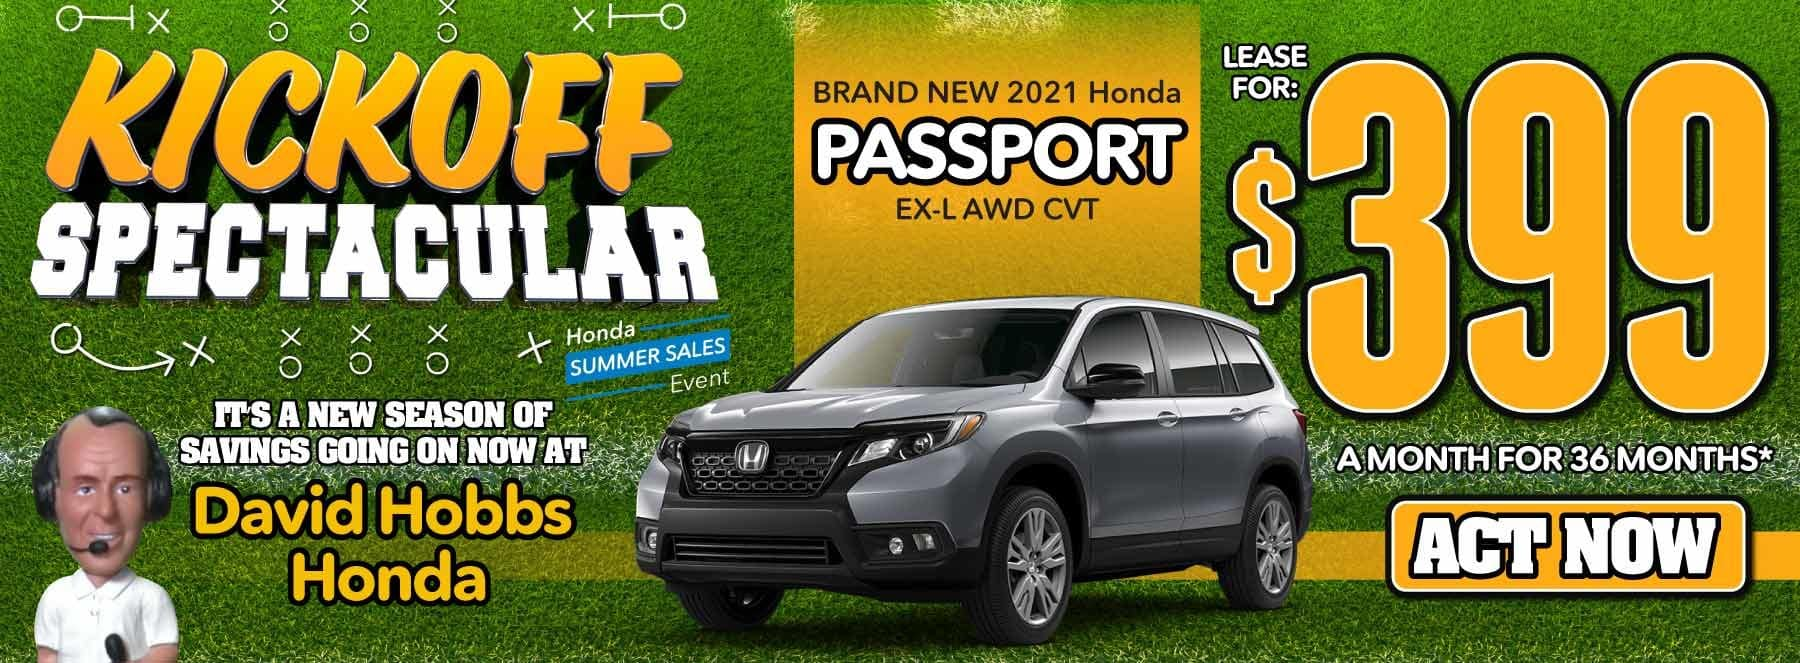 Brand New 2021 Honda Passport EX-L AWD CVT - Lease for $399 for 36 Mos. — ACT NOW